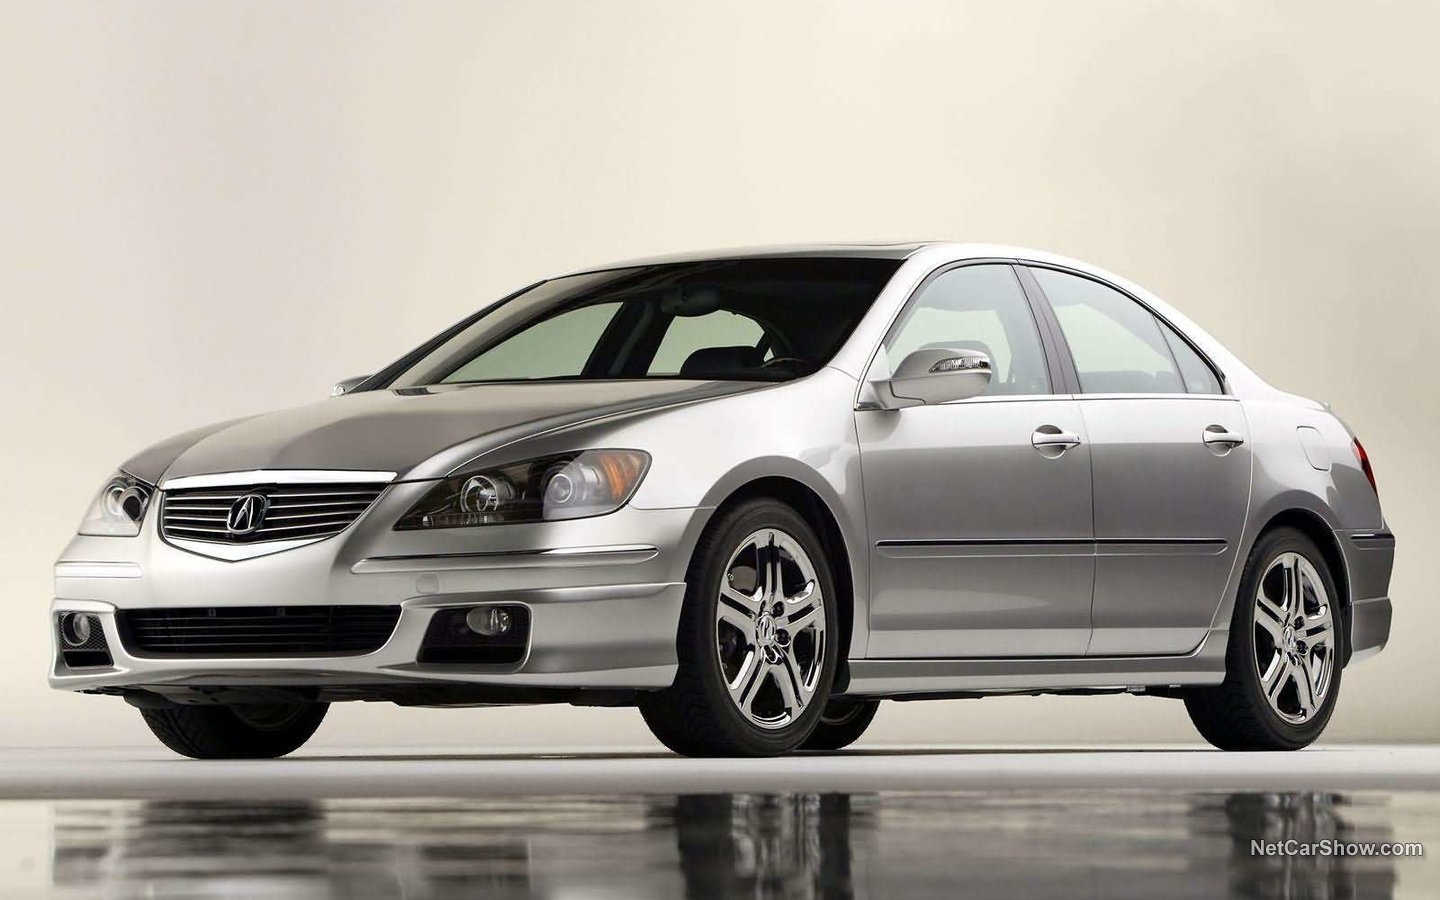 Acura RL A-Spec Performance Package 2005 4f8772c9